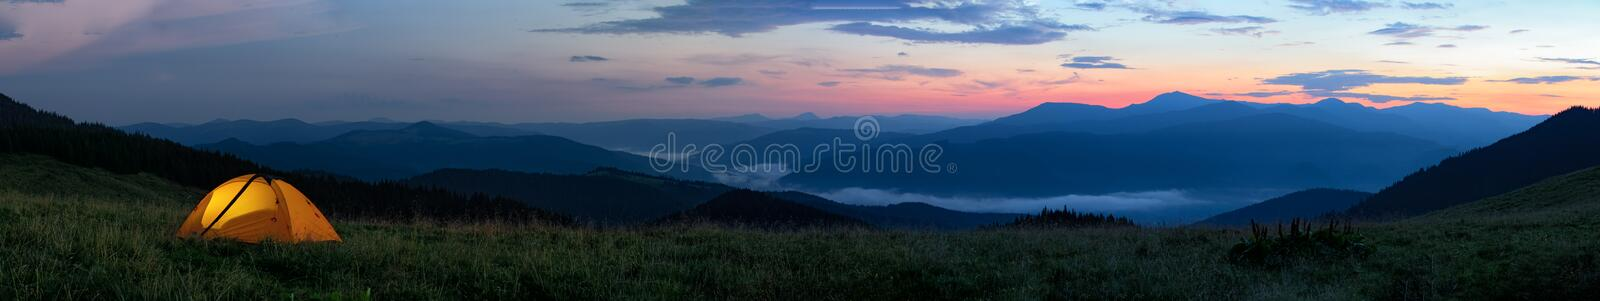 Orange tourist tent illuminated from inside stands in mountains above clouds royalty free stock photo